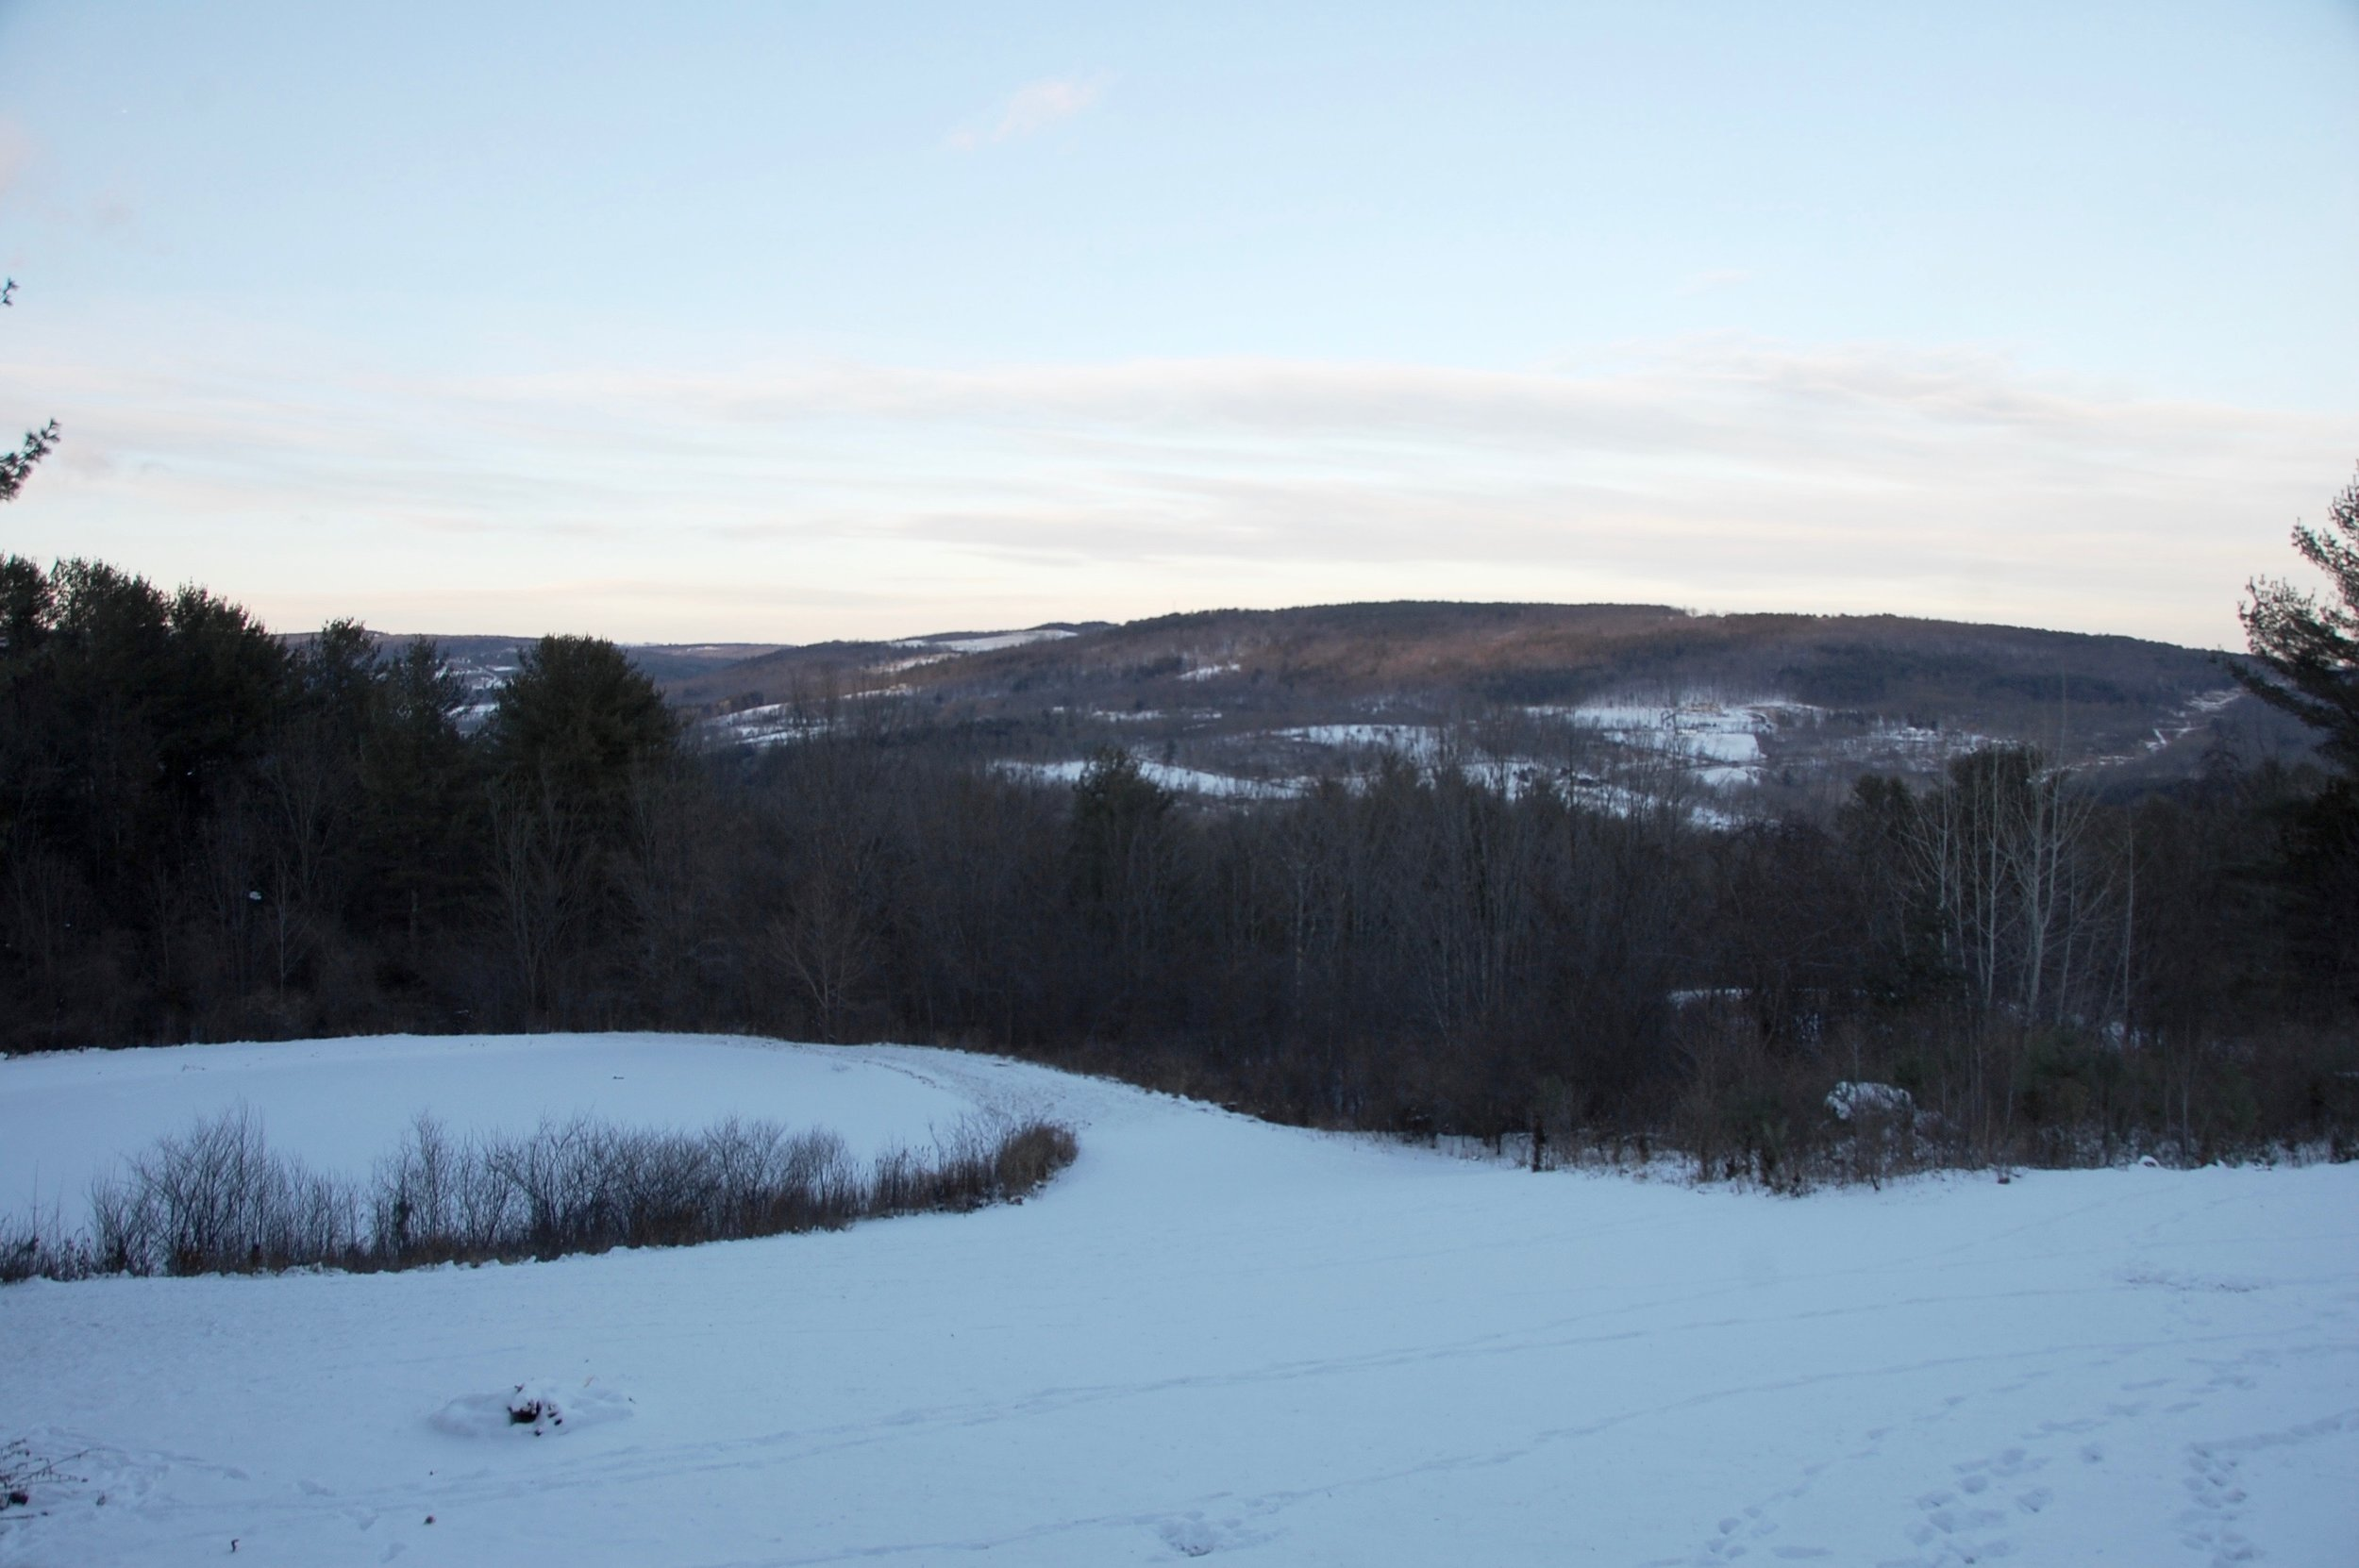 Catskill Mountains in the snow